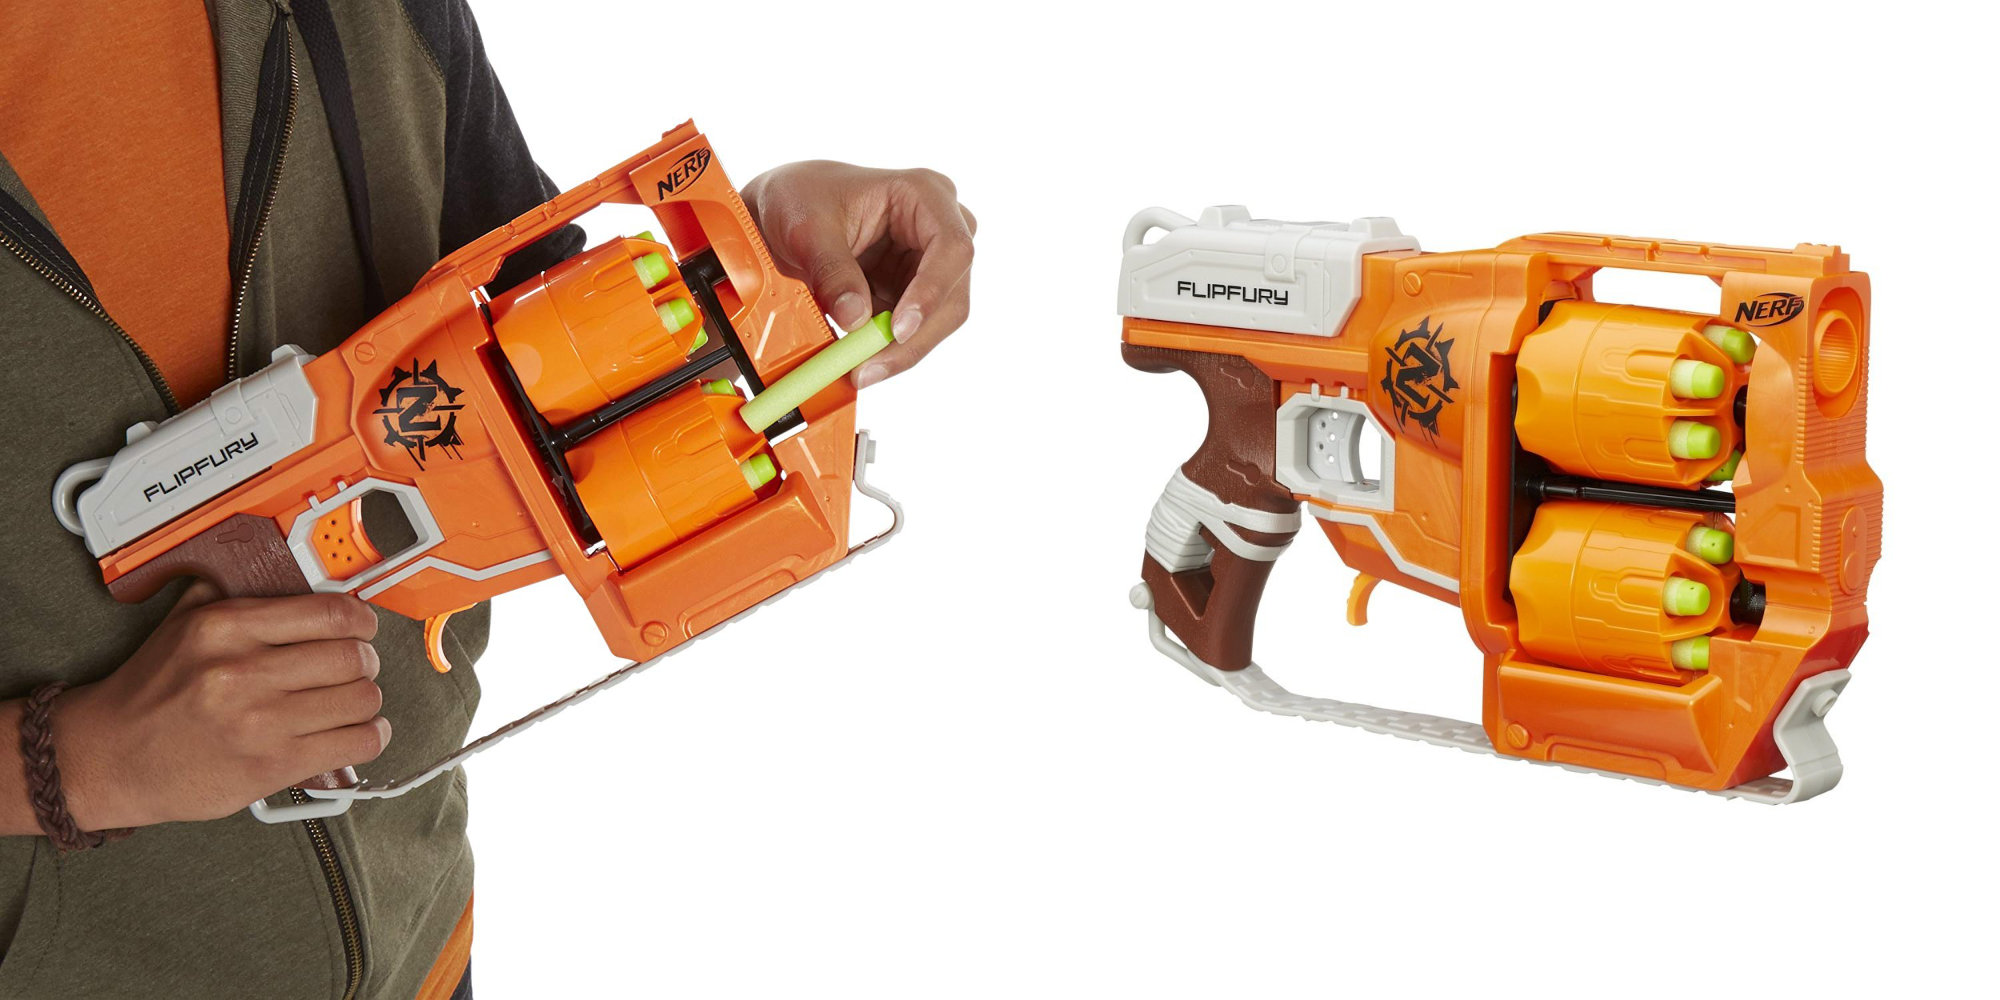 The Nerf ZombieStrike FlipFury features dual-barrels and a 12-dart capacity: $13 (Reg. $20)